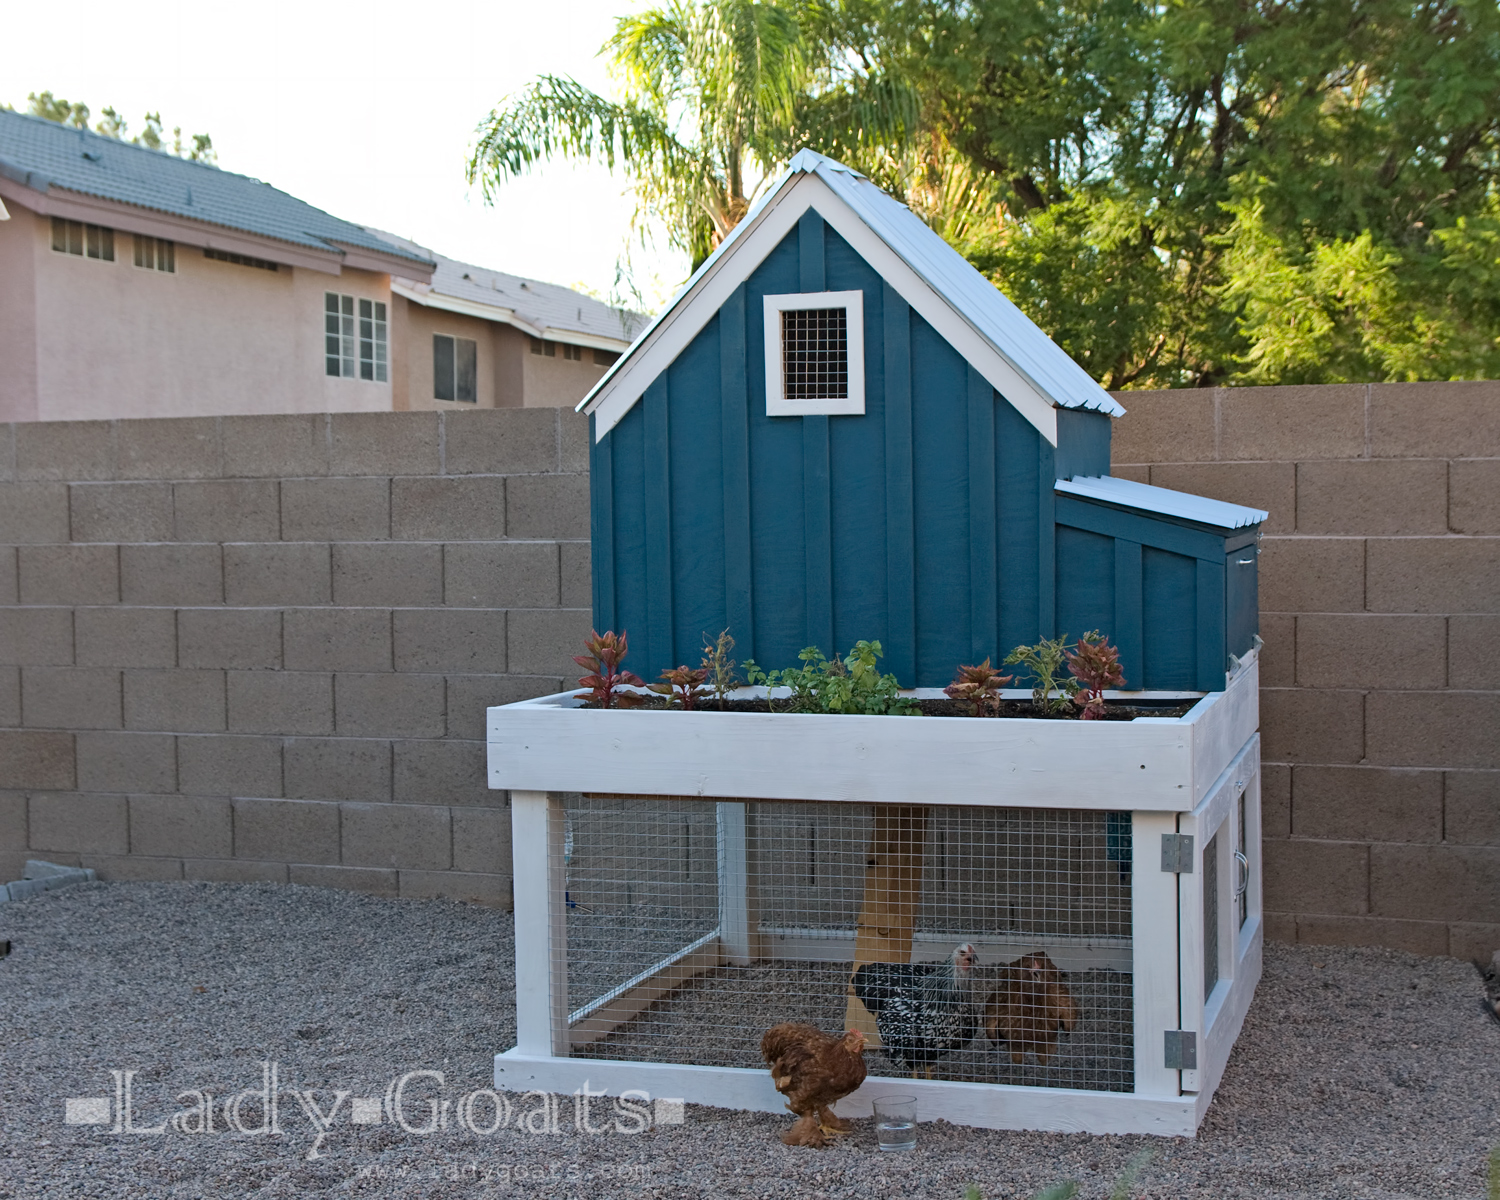 lady goats building a chicken house